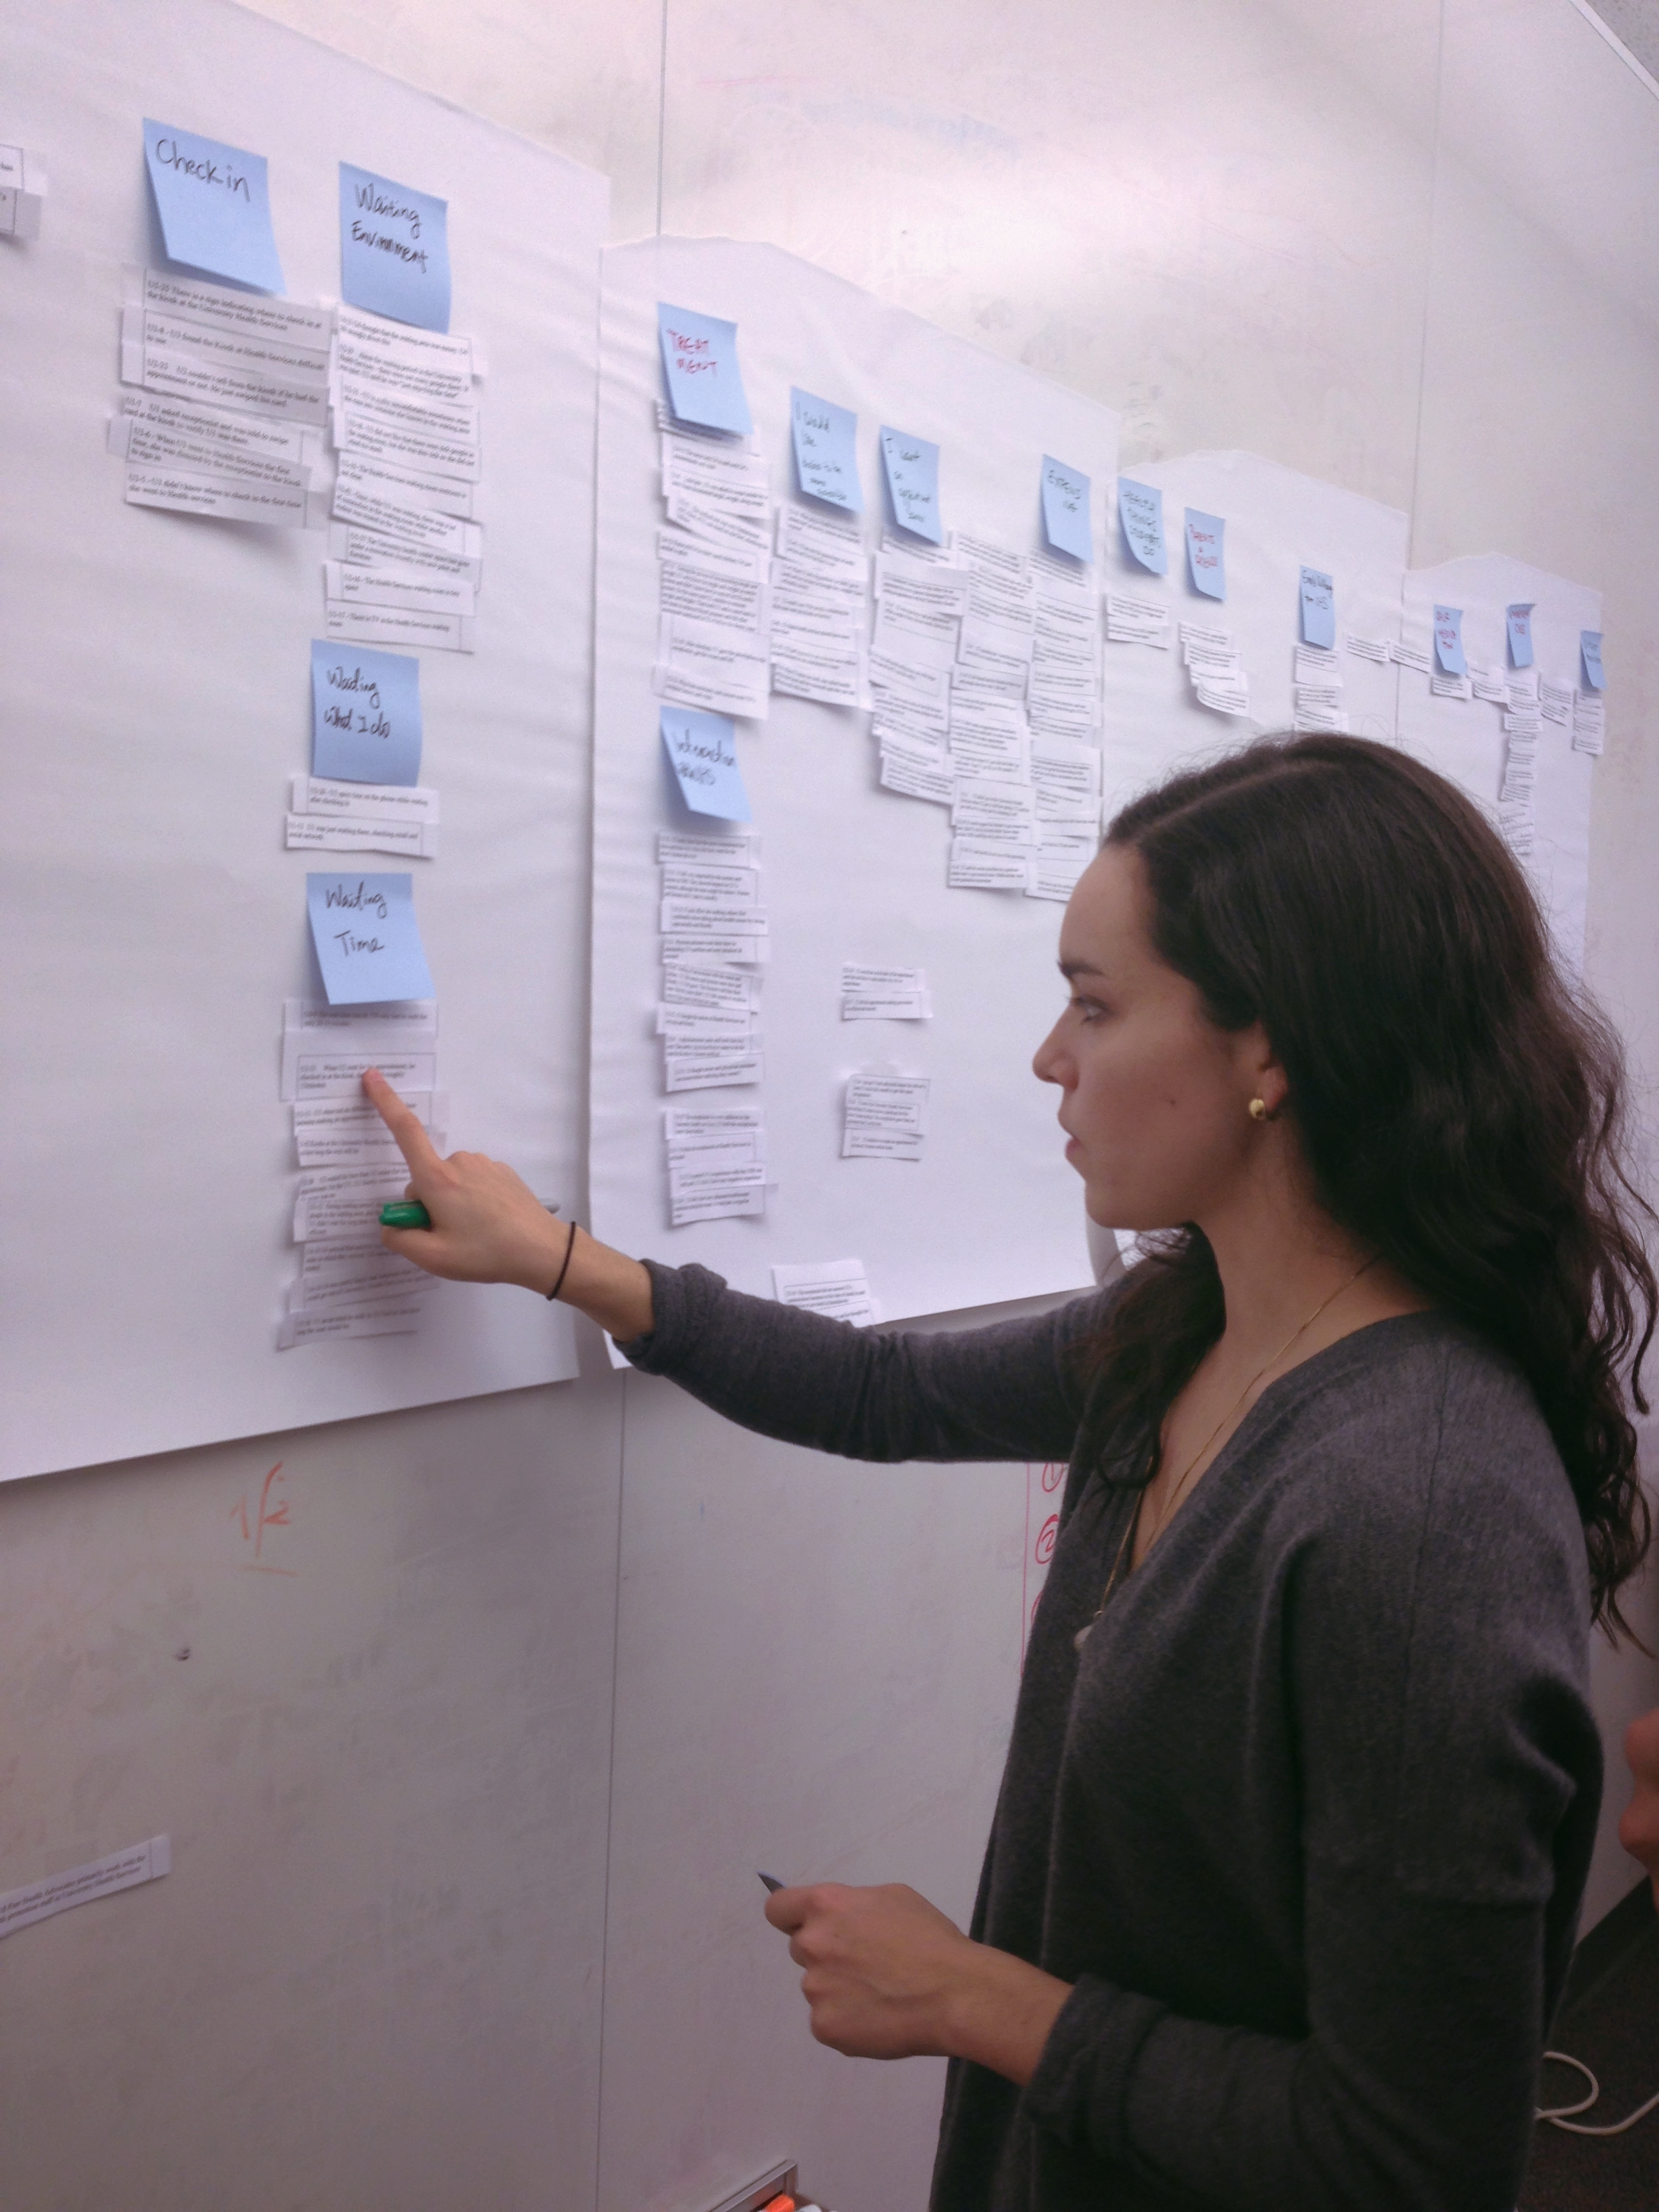 Health Services Redesign  Design proposal for improving CMU's health services. Contextual Inquiry  | Interviews  | Storyboarding